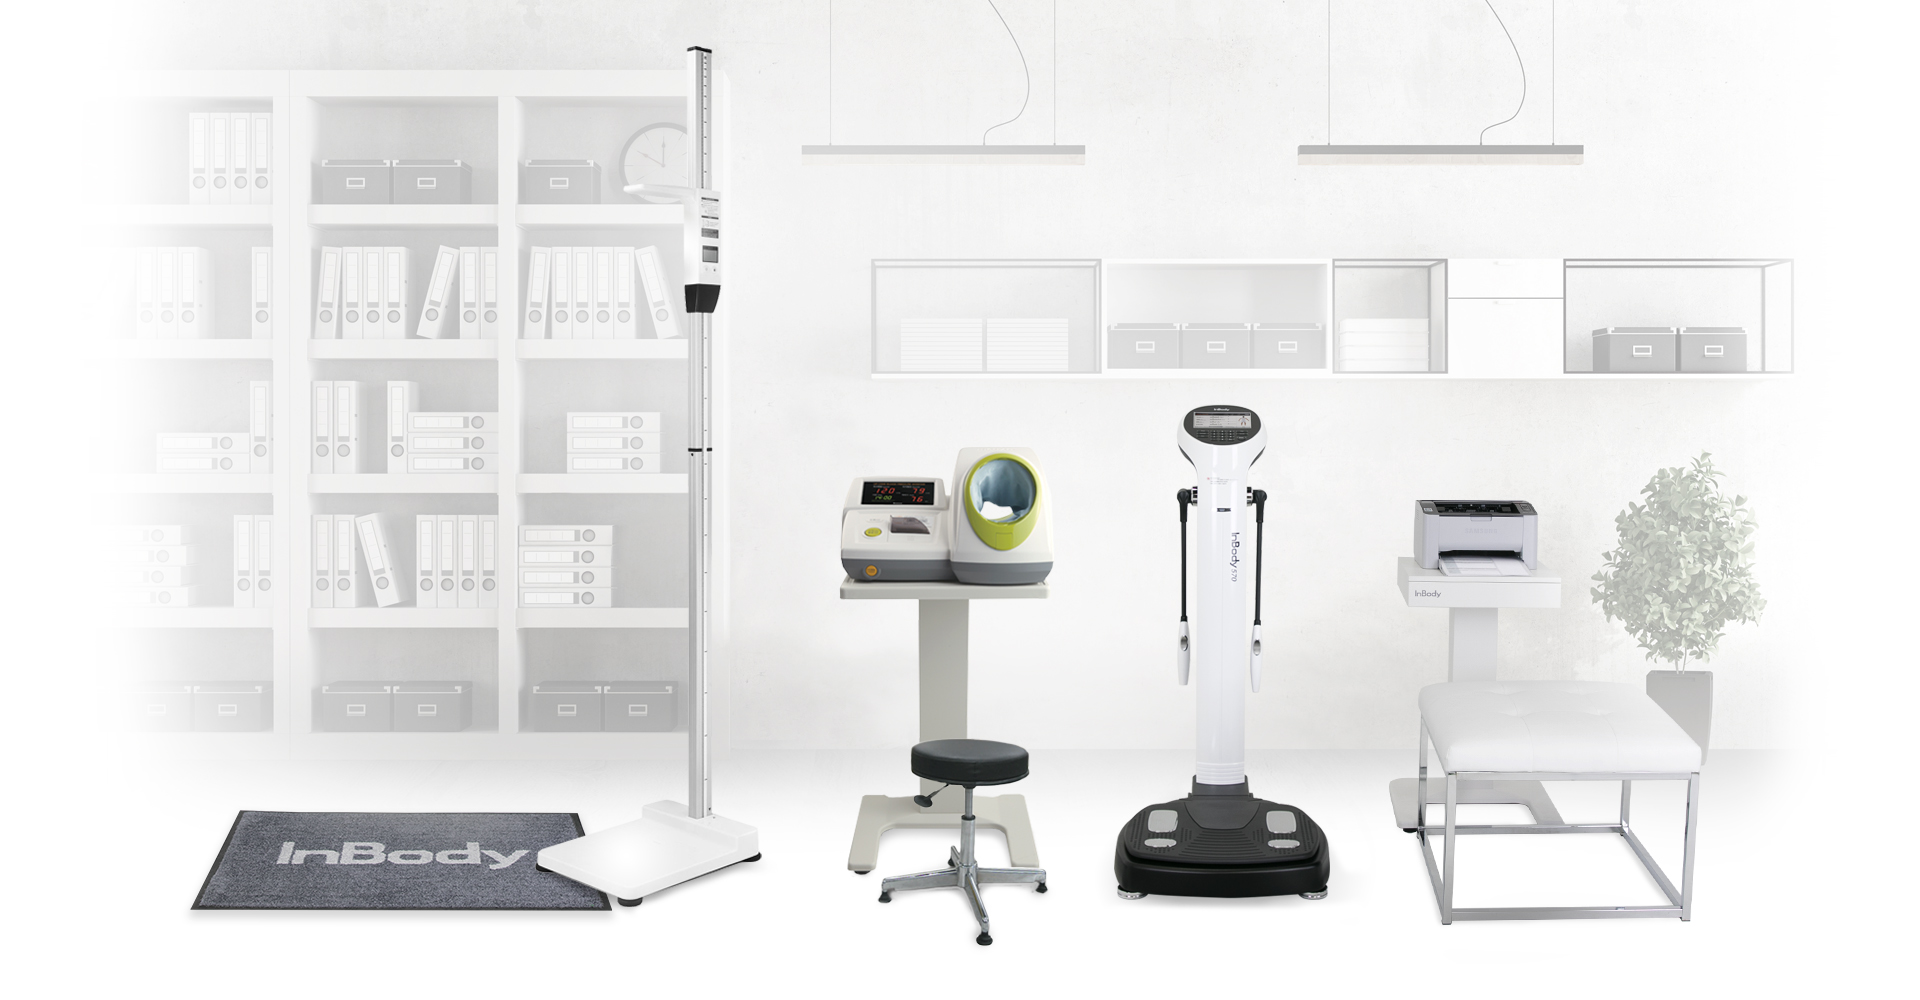 The InBody 570 in practice with BSM 170 stadiometer, InBody mat, printer, and ottoman